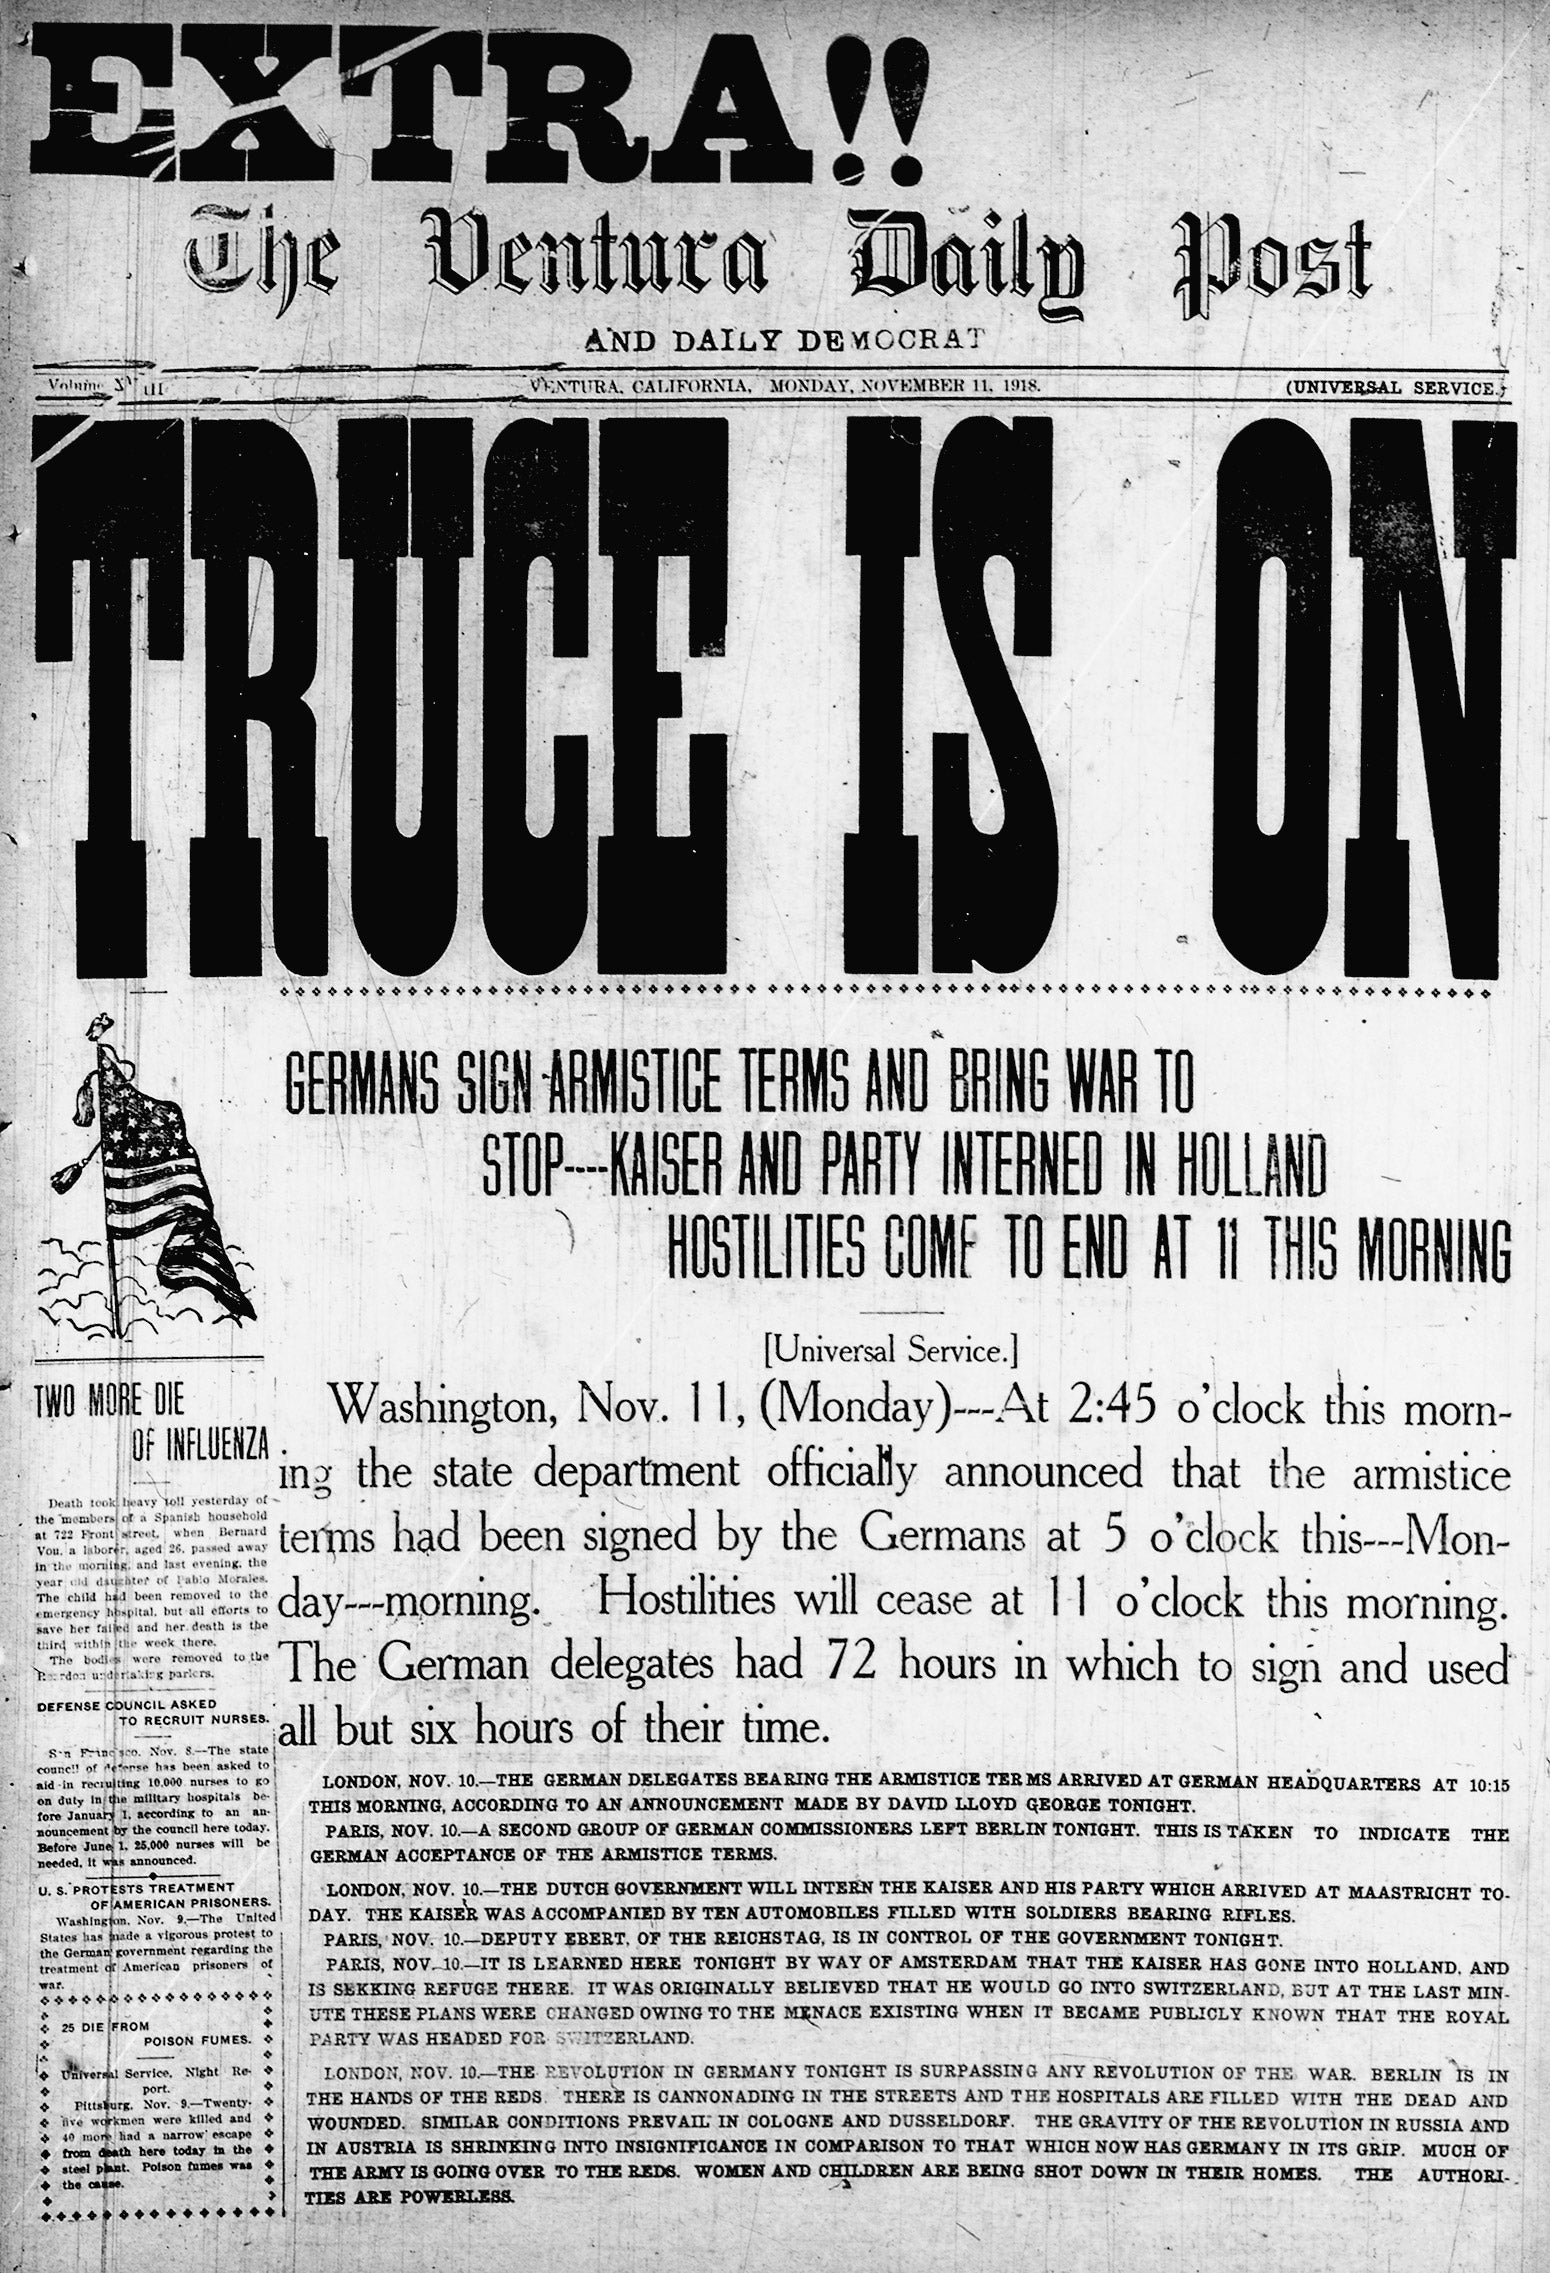 The November 11, 1918, edition of The Ventura Daily Post